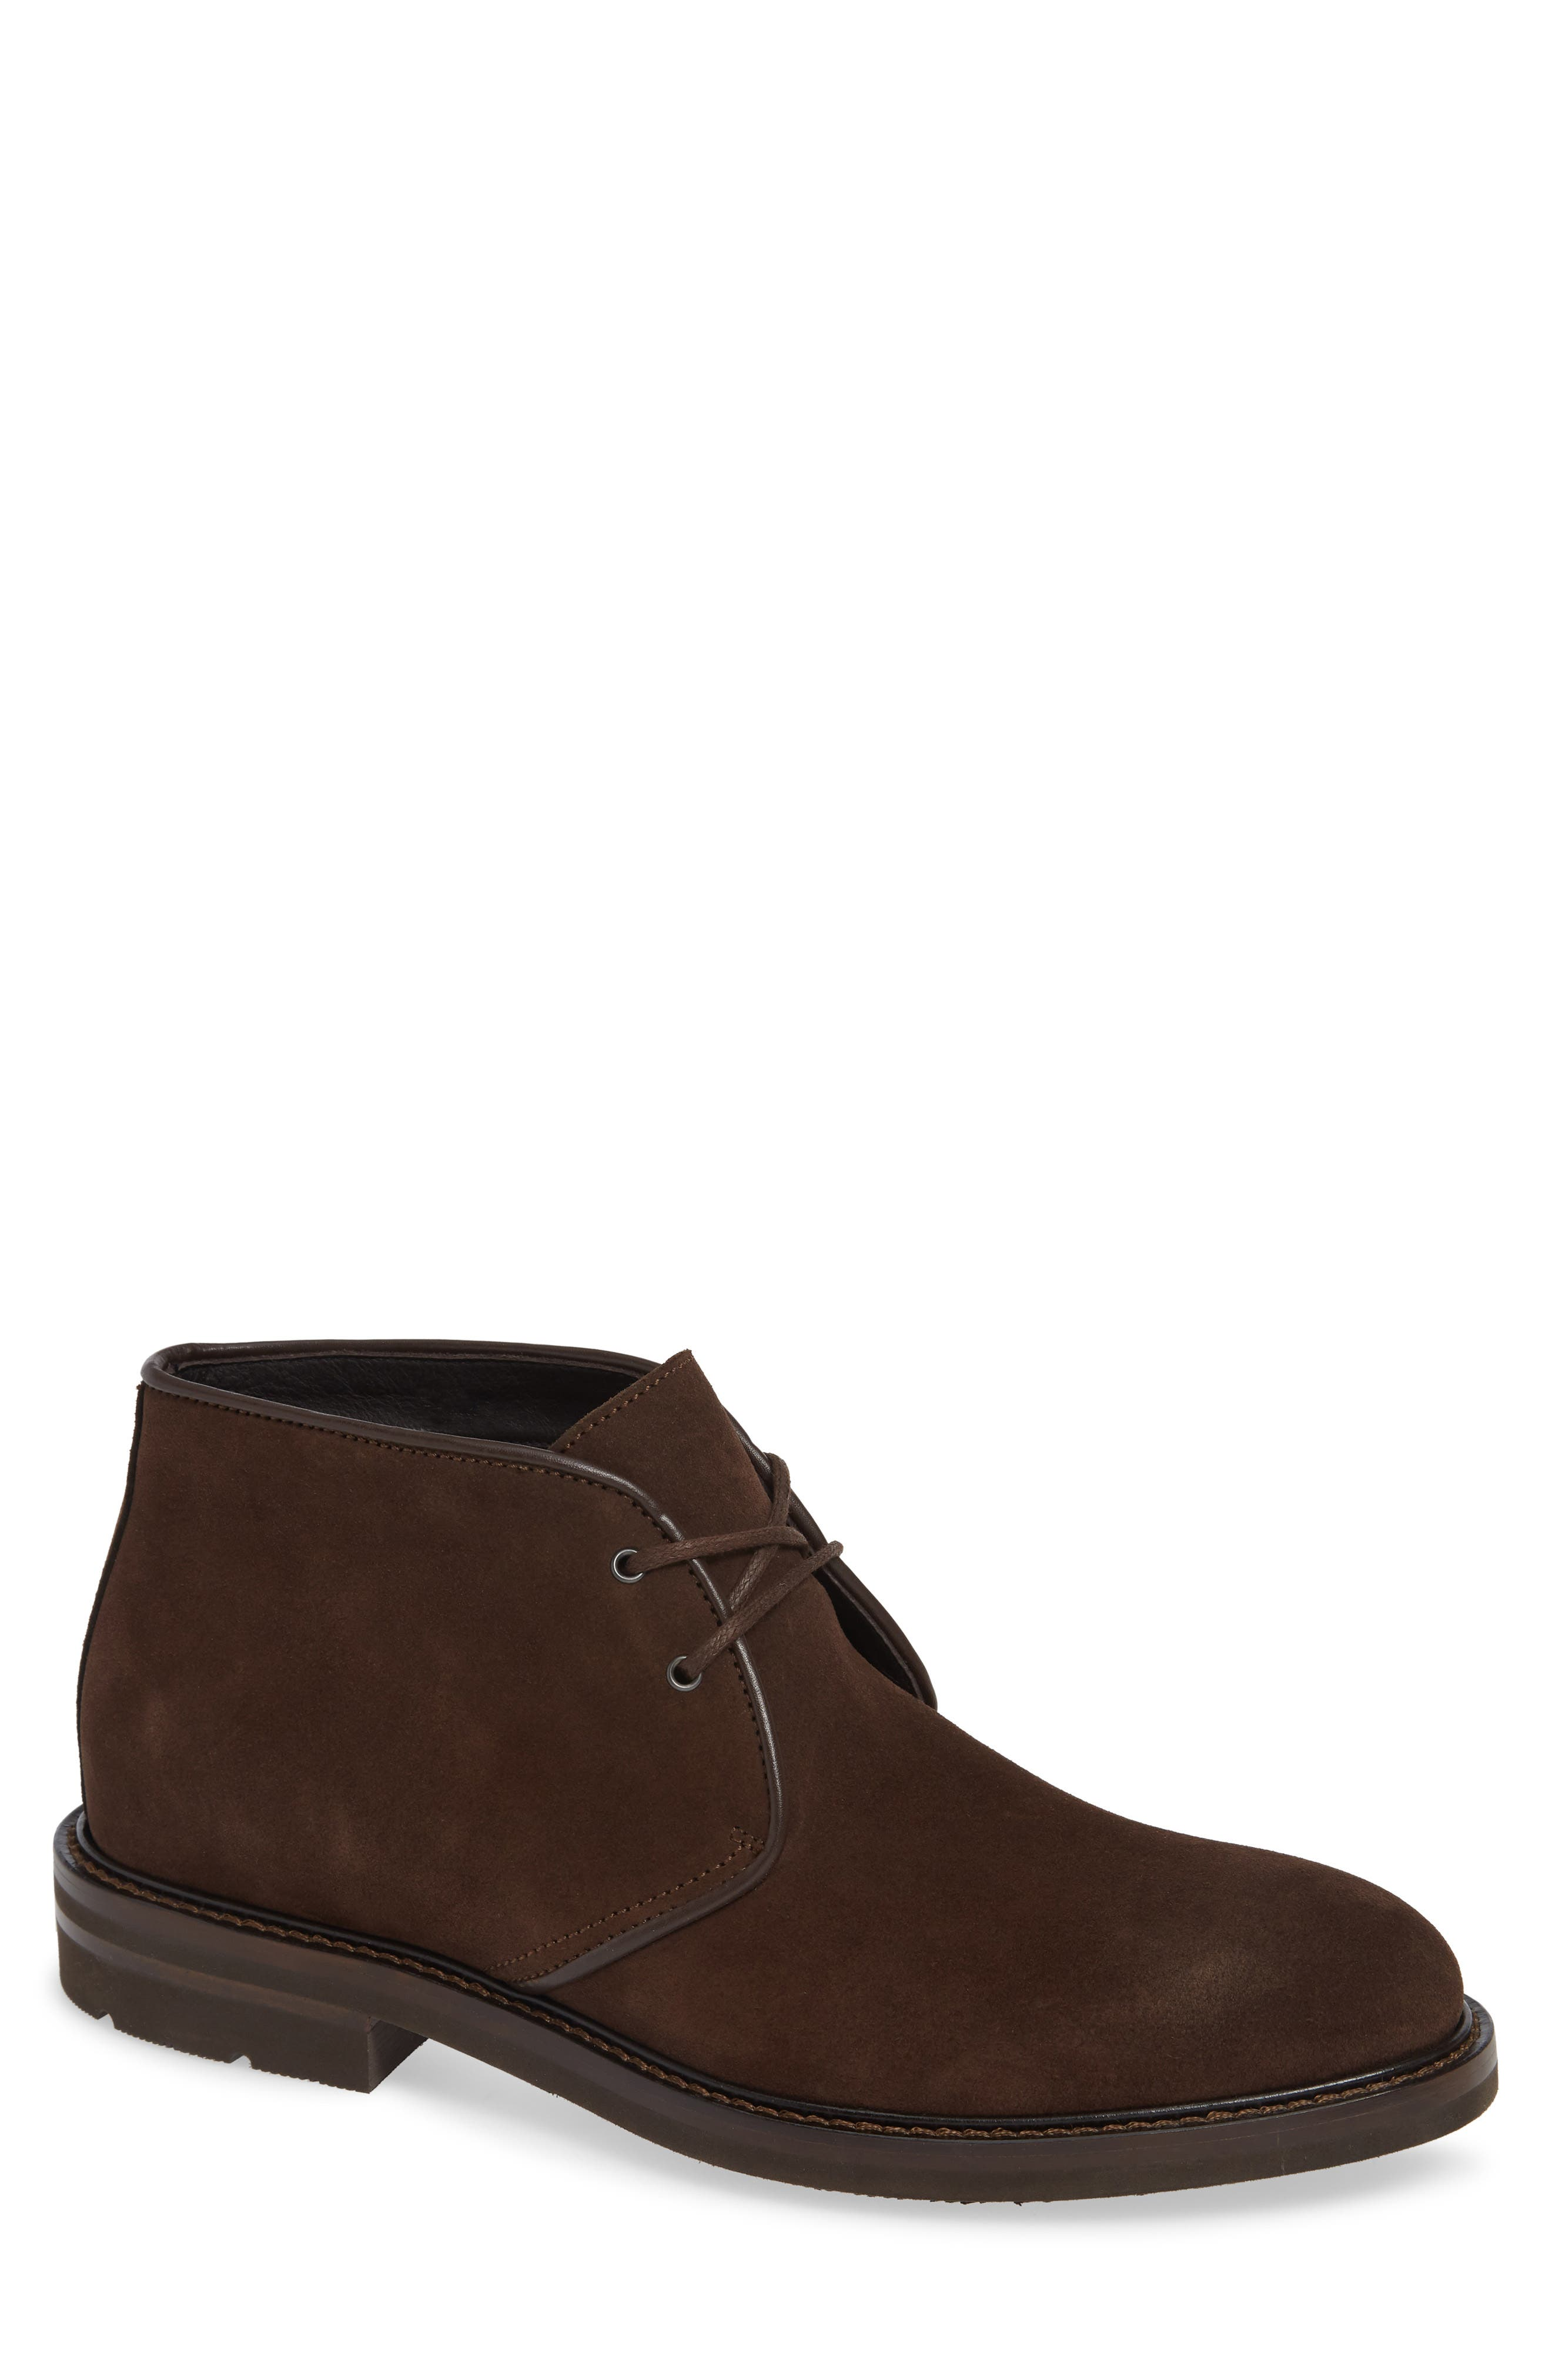 Aquatalia Rinaldo Chukka Water Resistant Boot- Brown